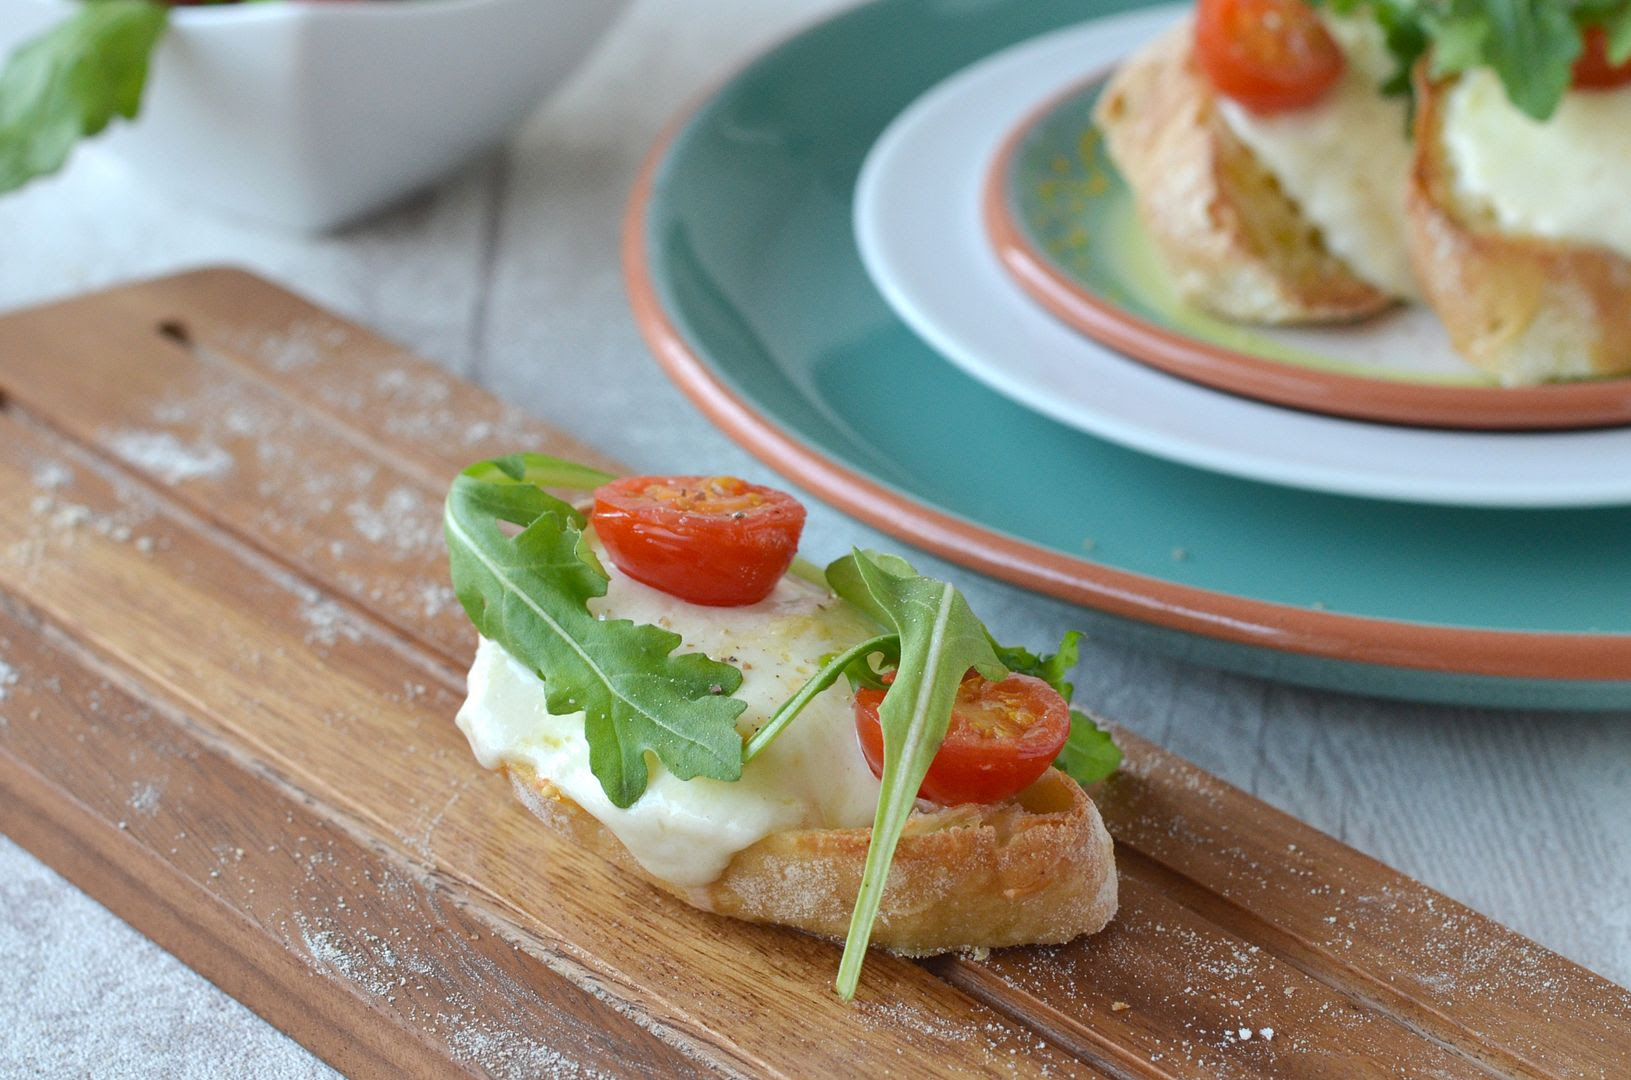 Home Baked Ciabatta topped with Mozzarella, Tomato & Rocket